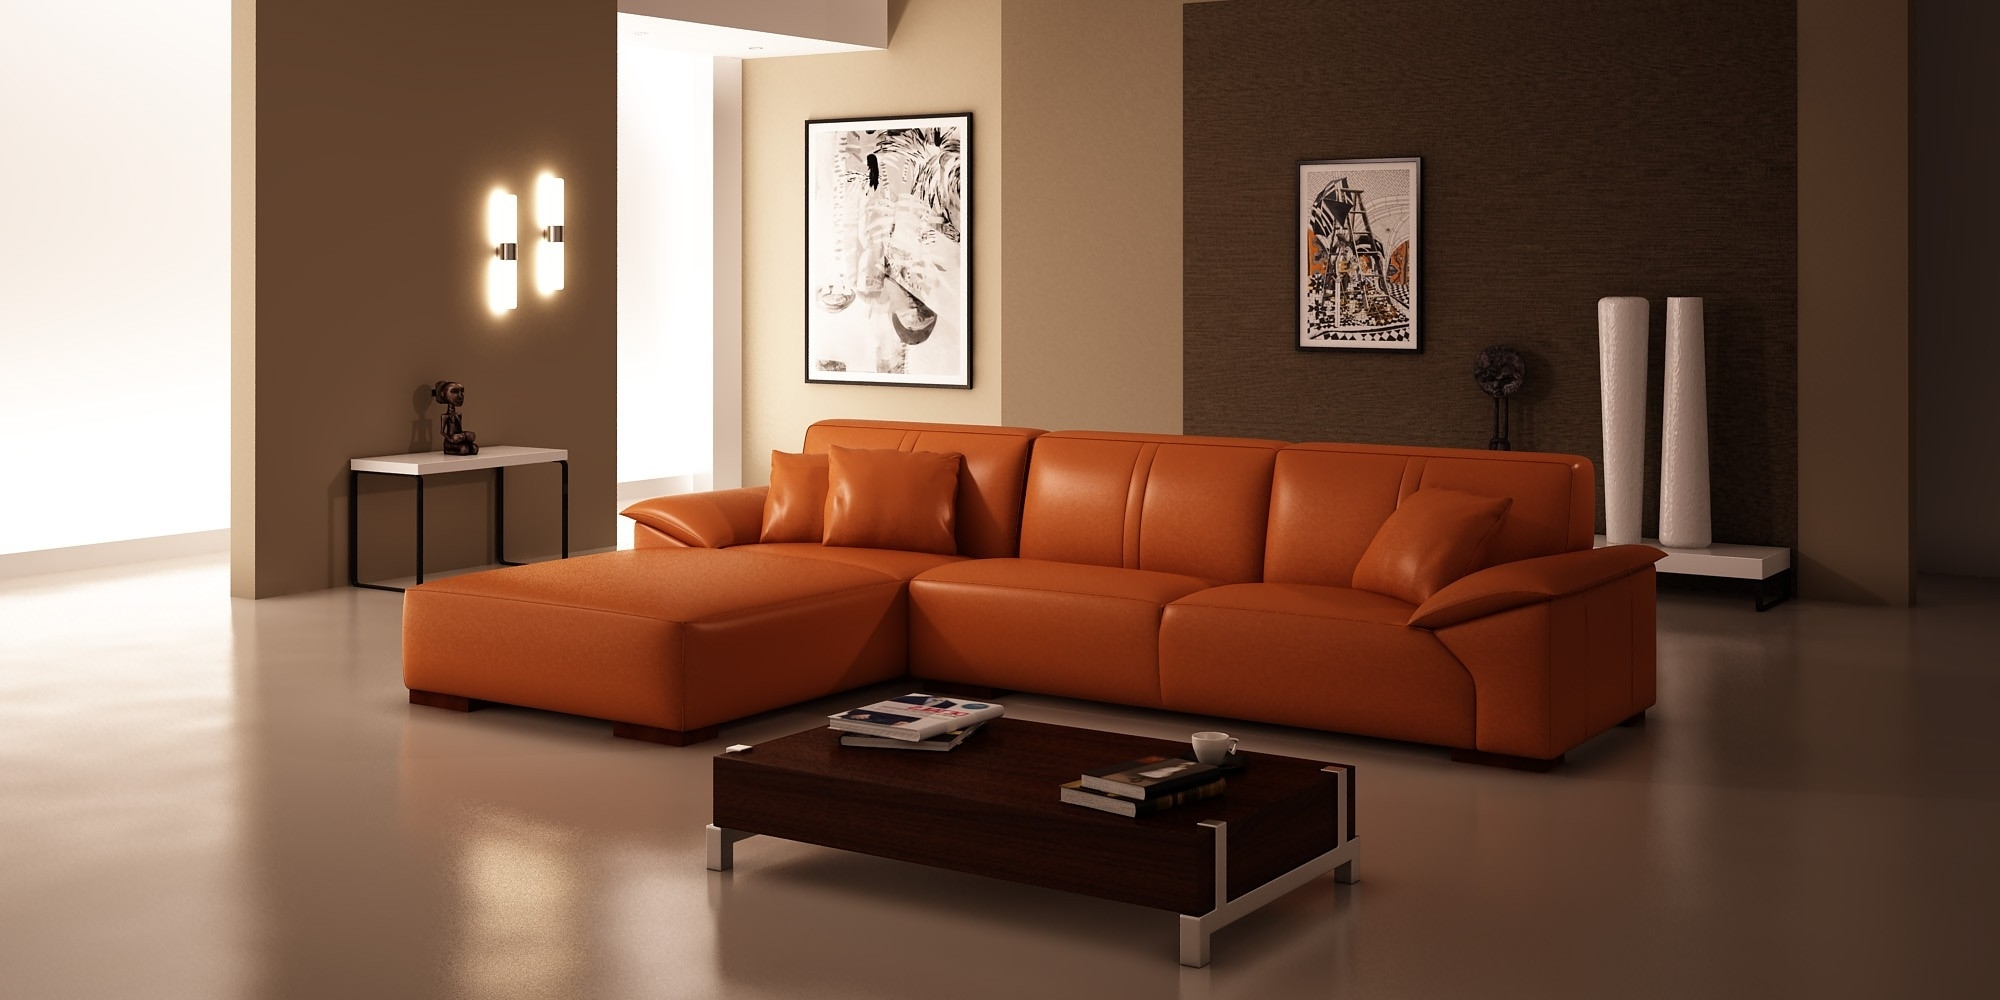 Fashionable Furniture: Impressive Living Room Decor Using Chic Sectional Pertaining To Sectional Sofas At Amazon (View 7 of 20)